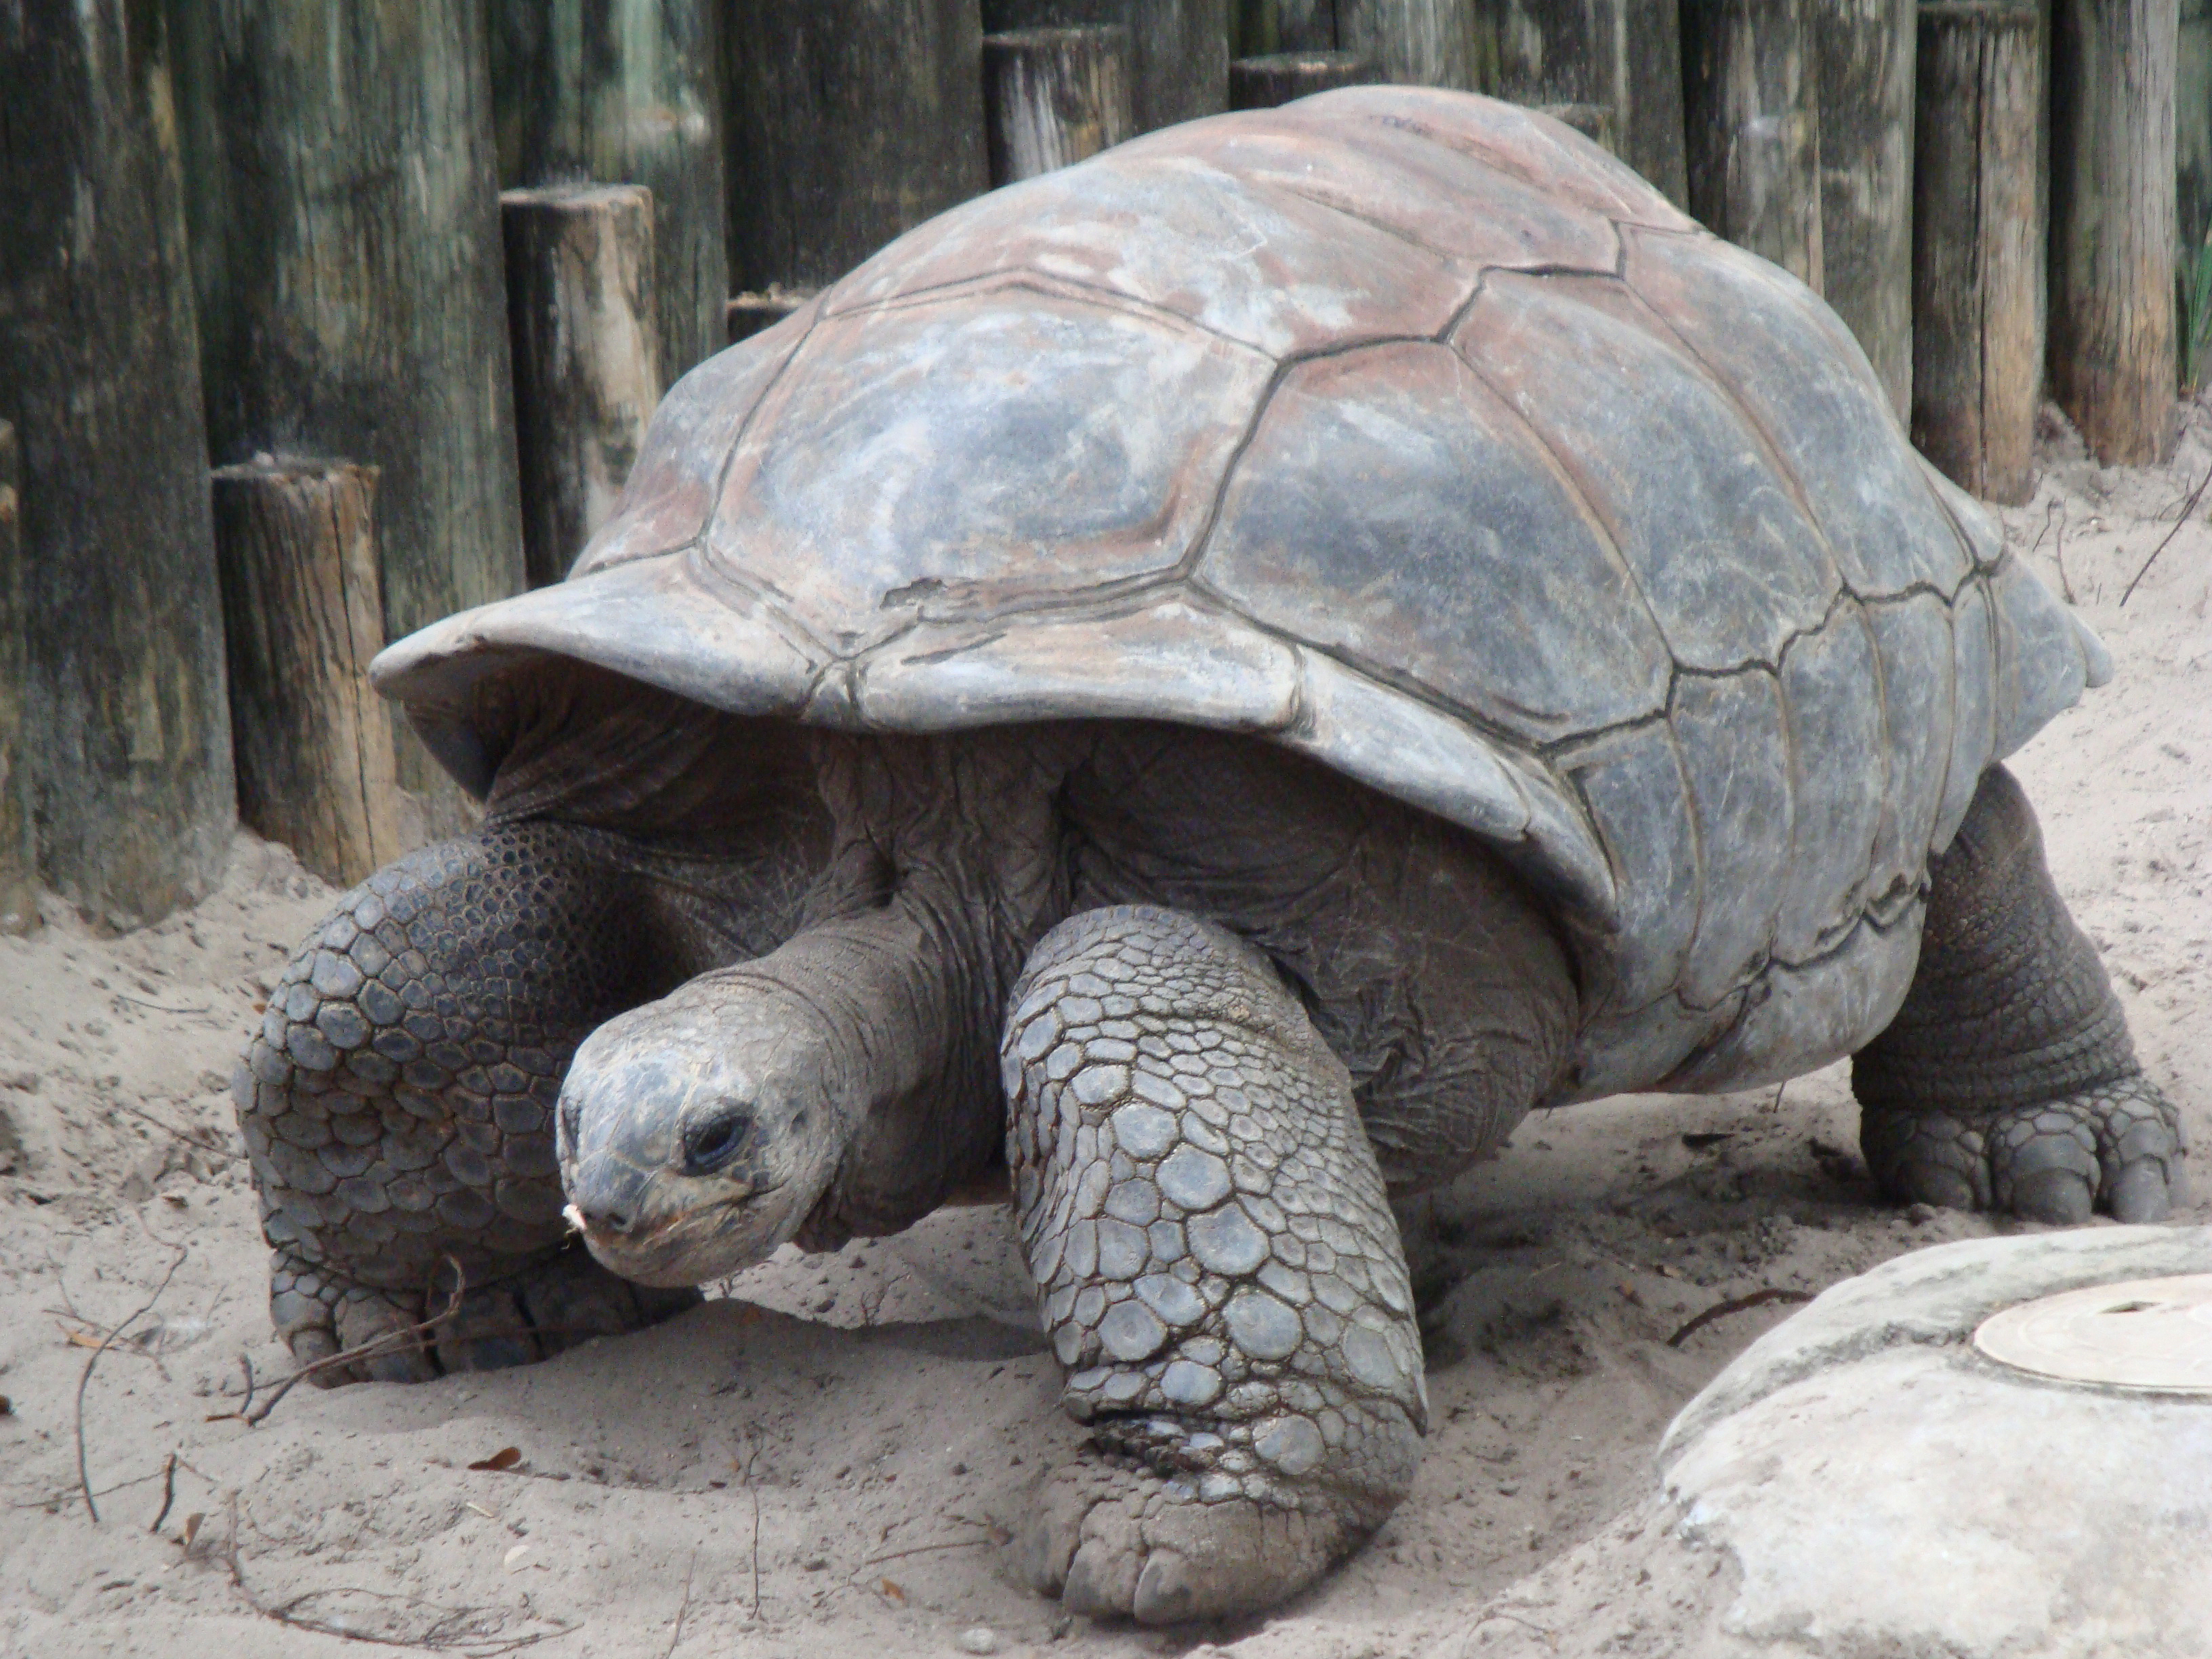 Giant Tortoise Wikipedia